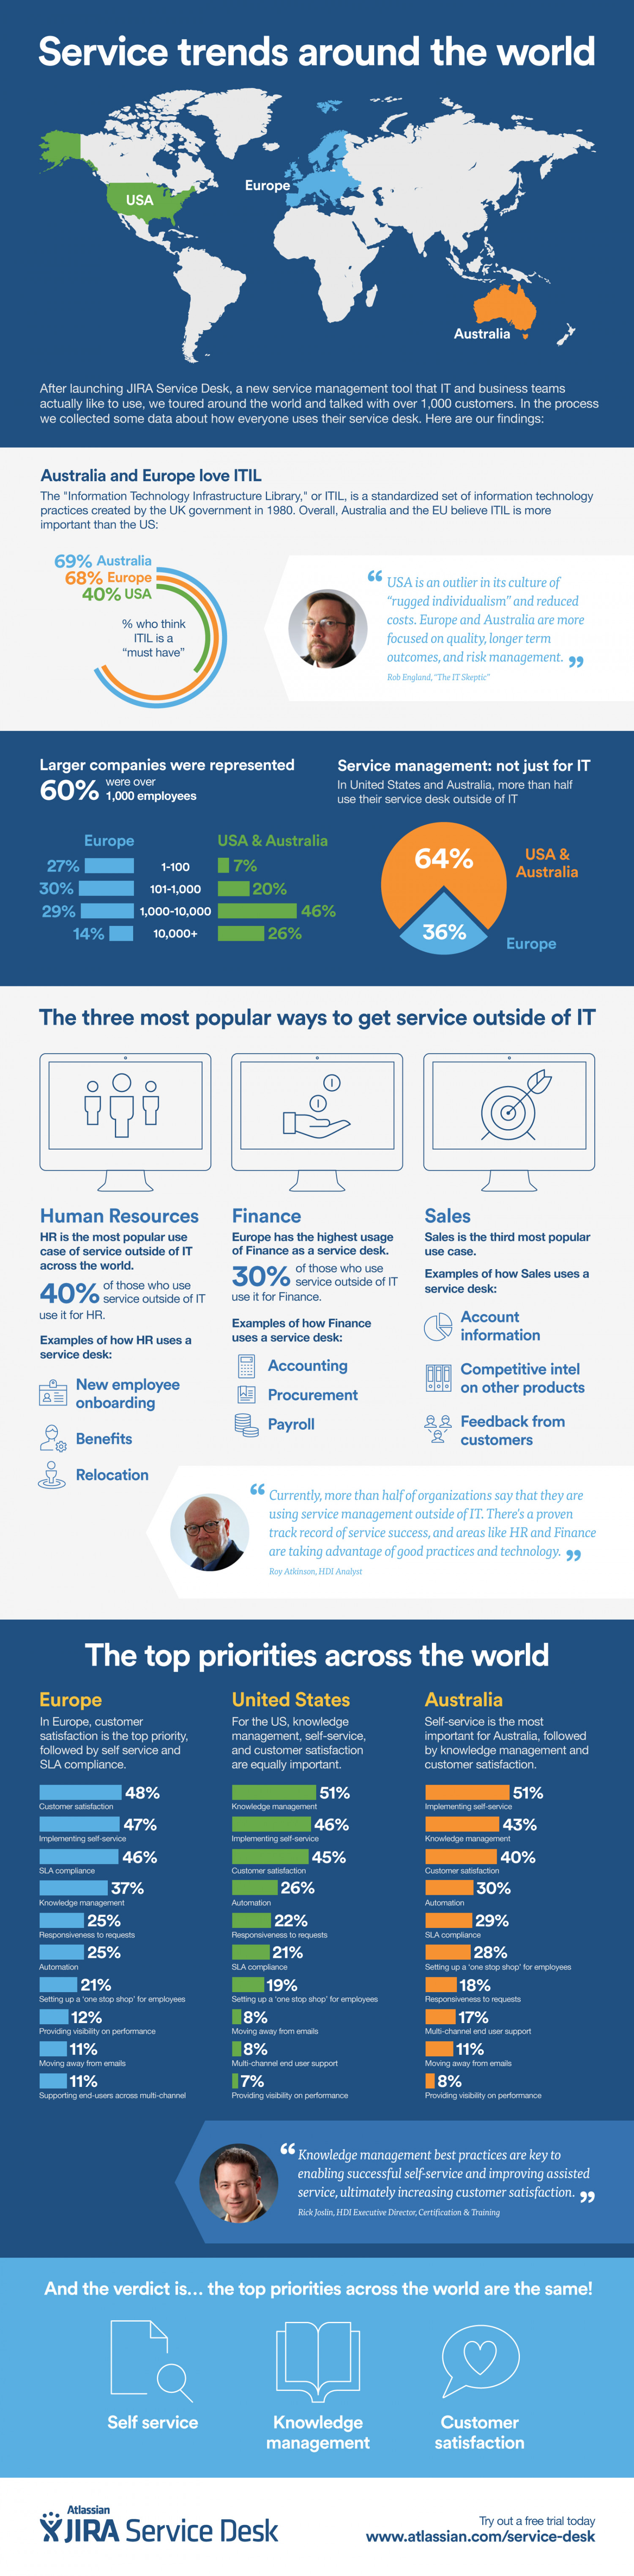 Service Trends Around the World Infographic